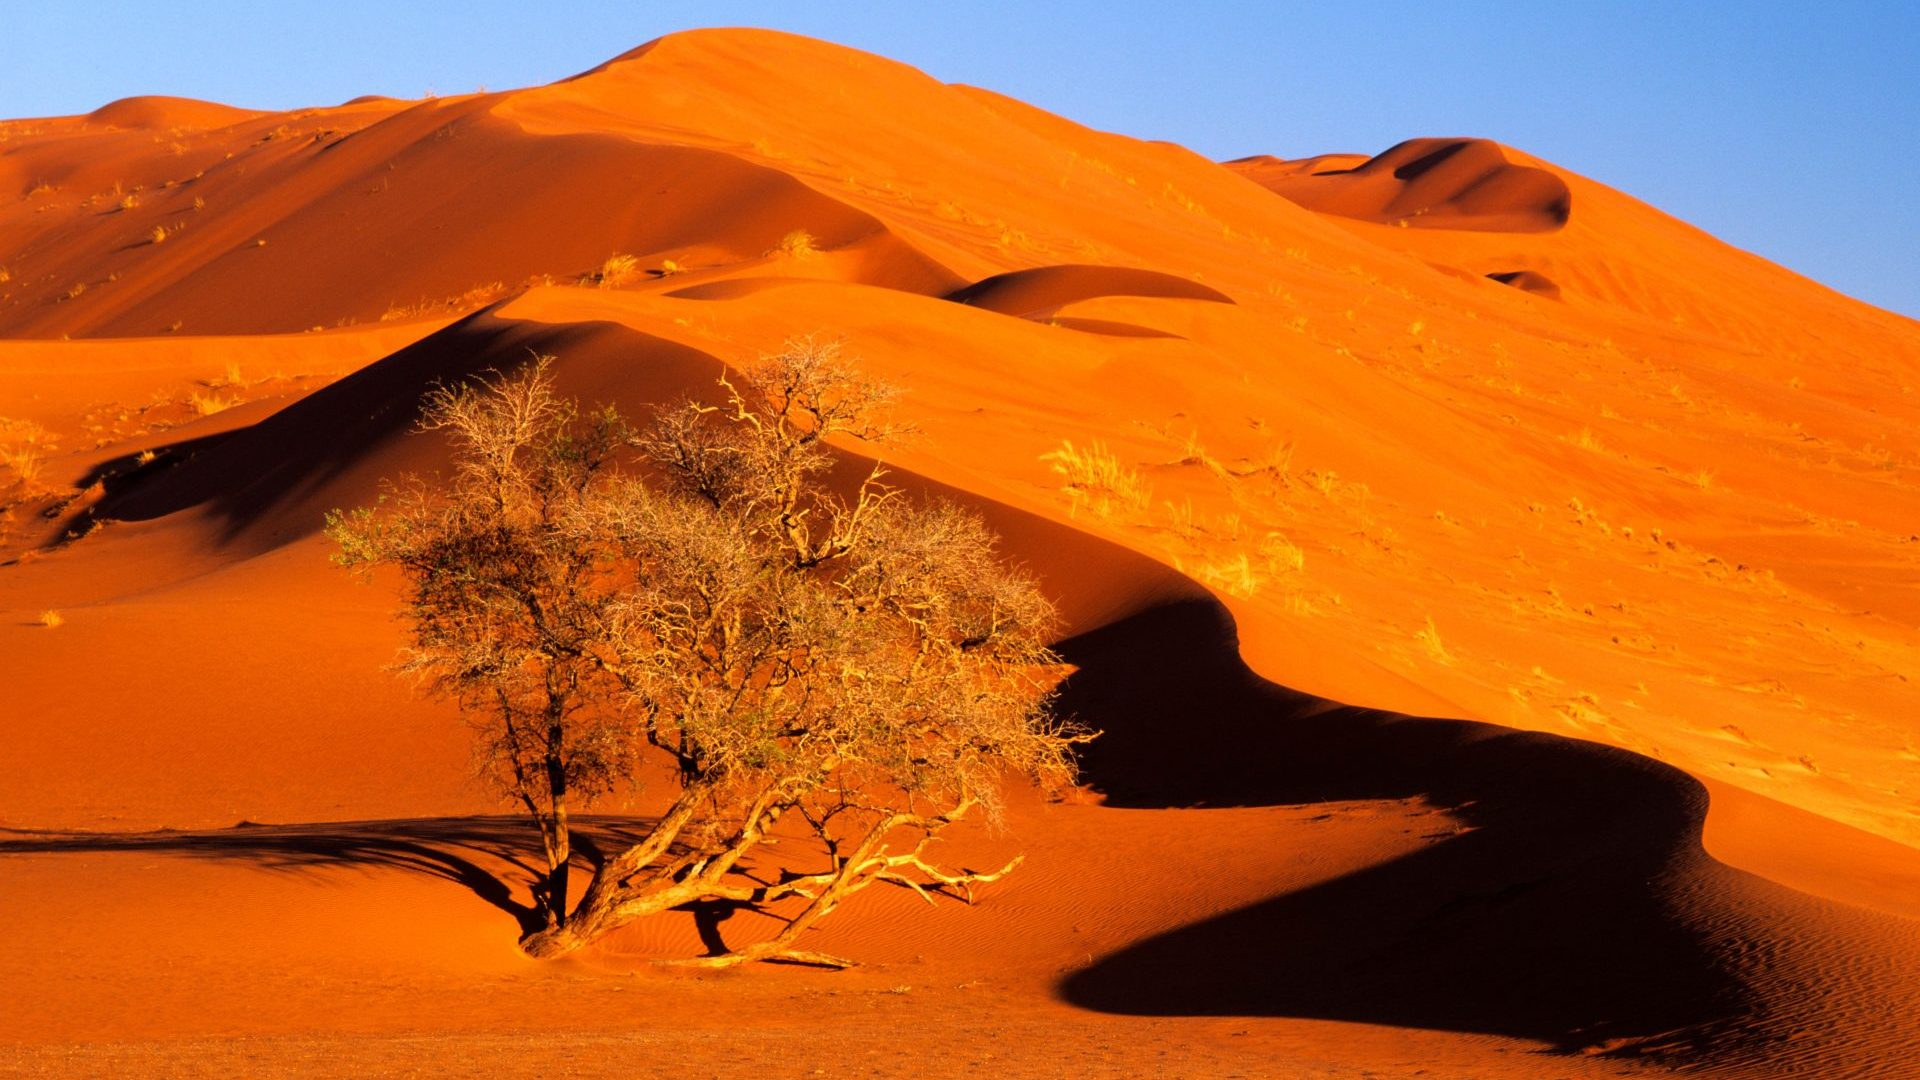 Elim Dune towering over an acacia tree in Namib Naukluft Park, Namibia